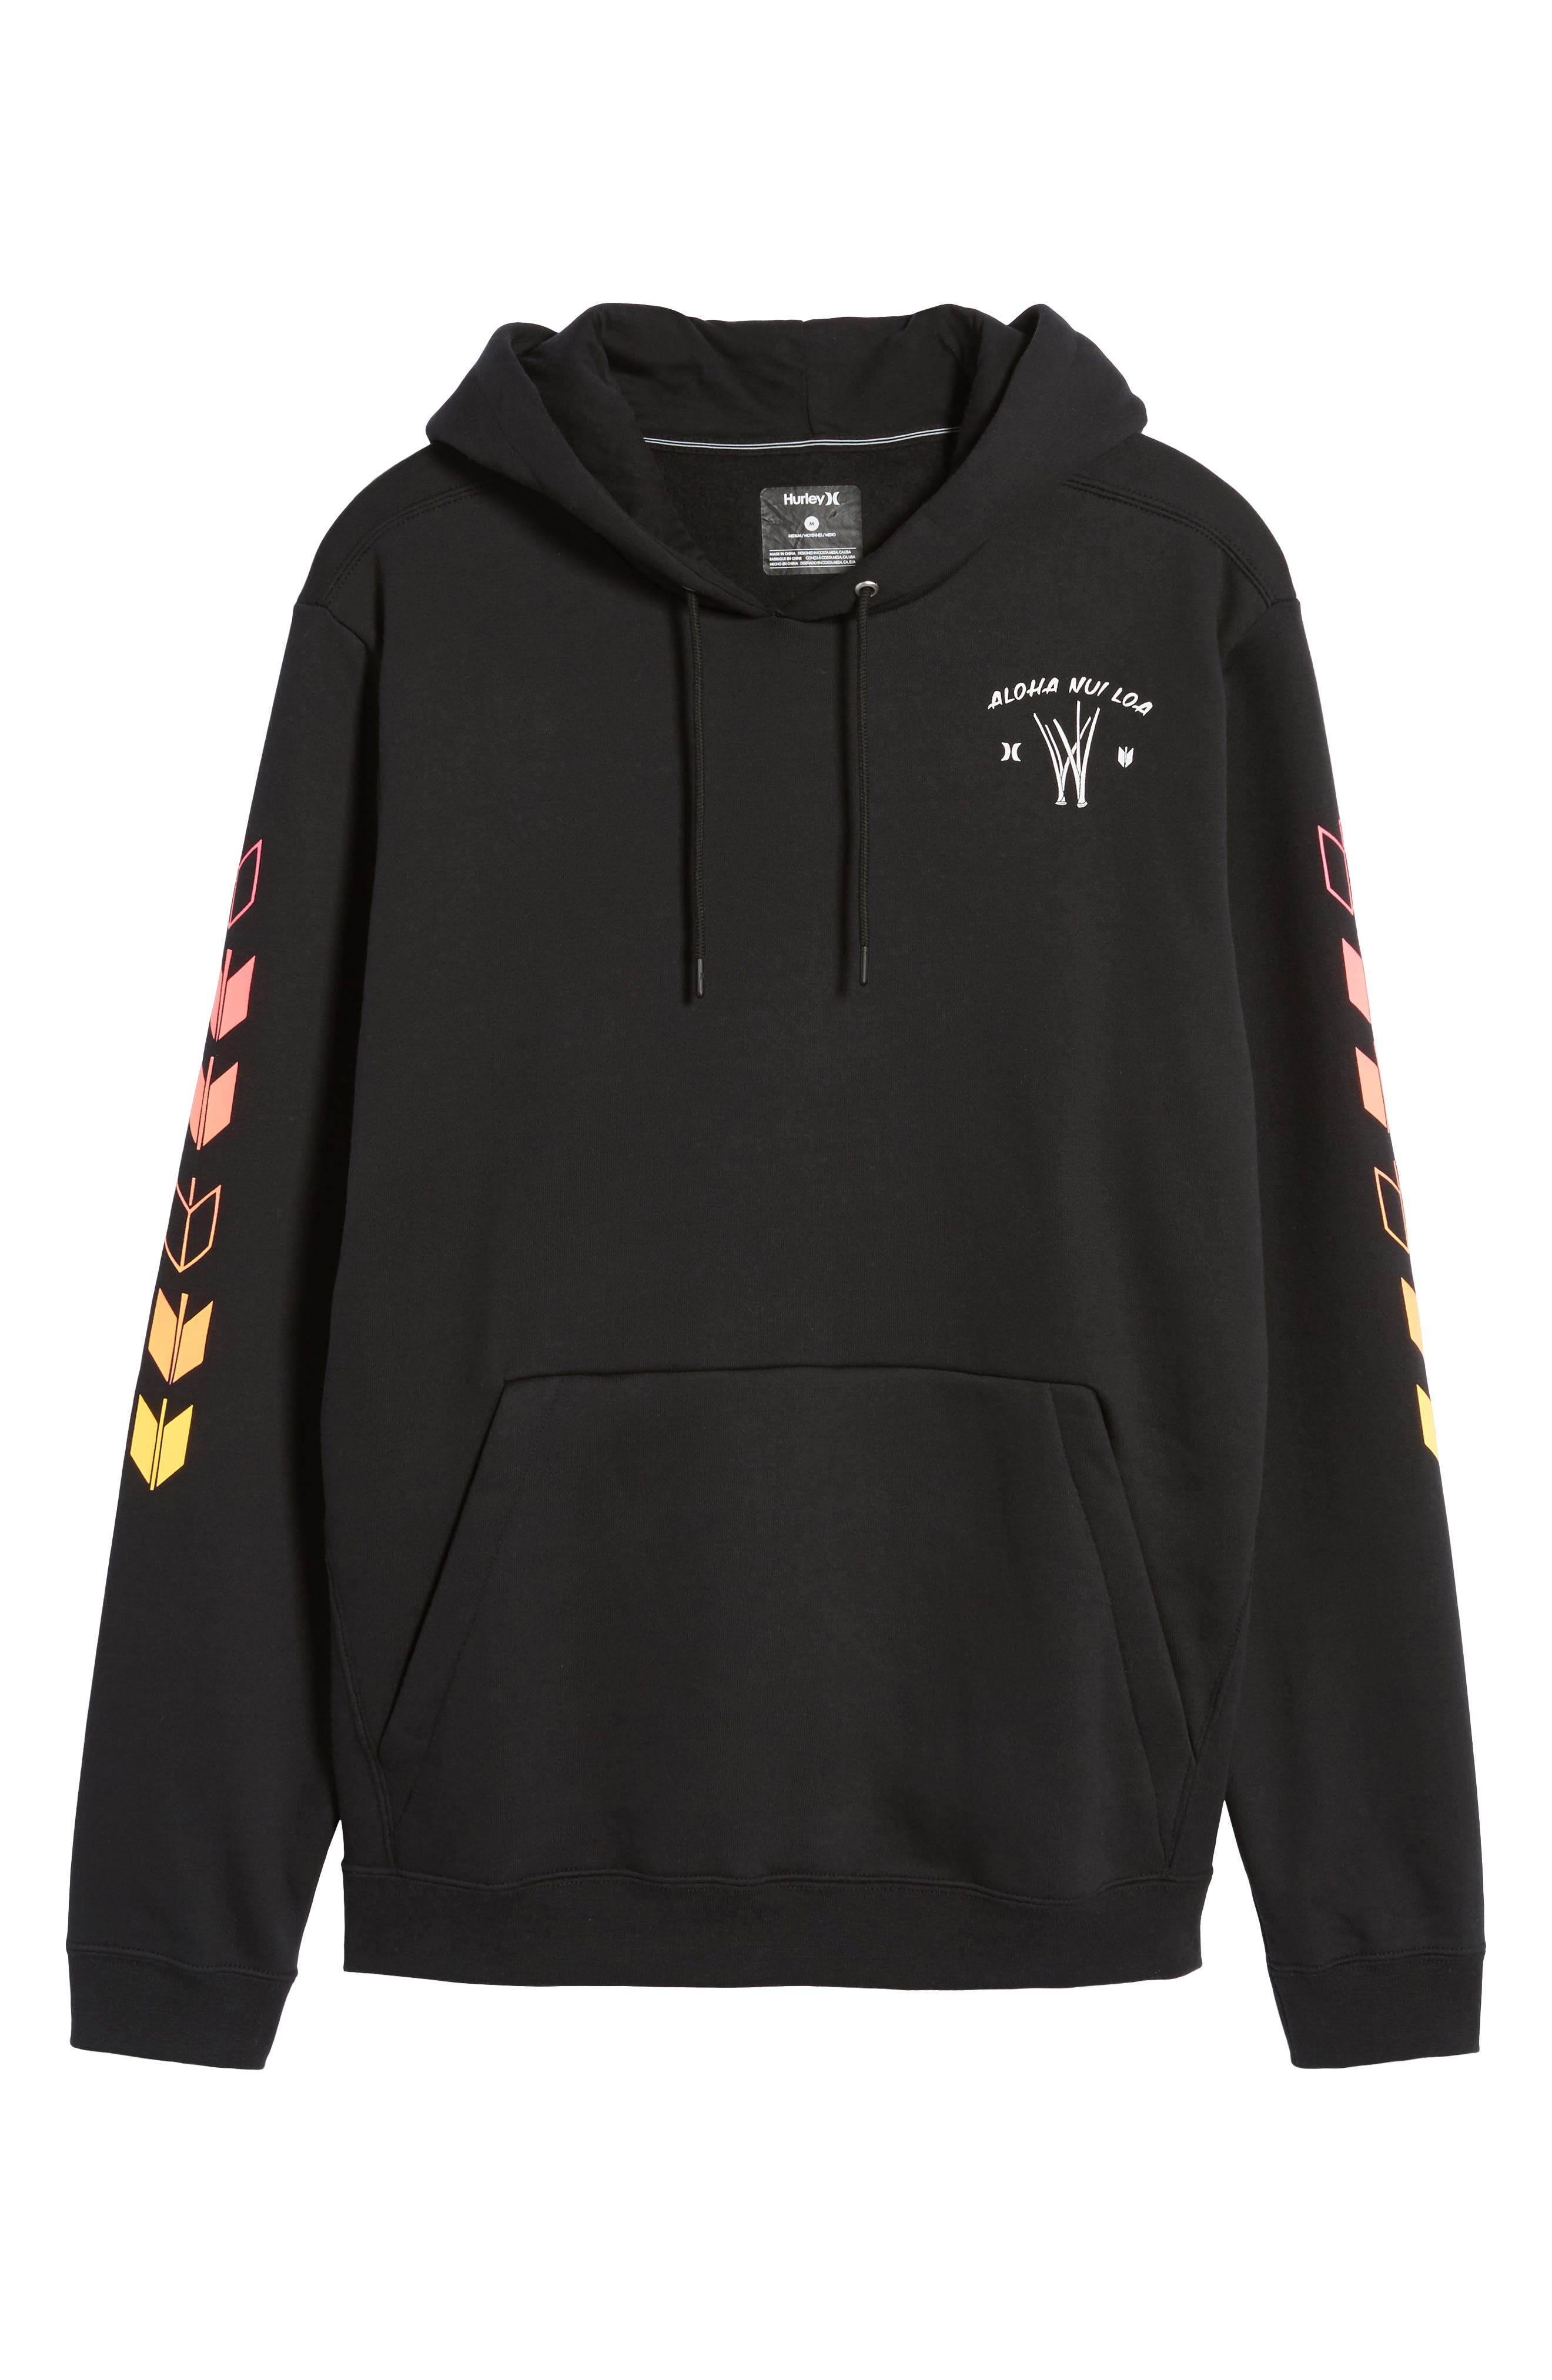 Surf Check Sig Zane Pullover Hoodie,                             Alternate thumbnail 6, color,                             010